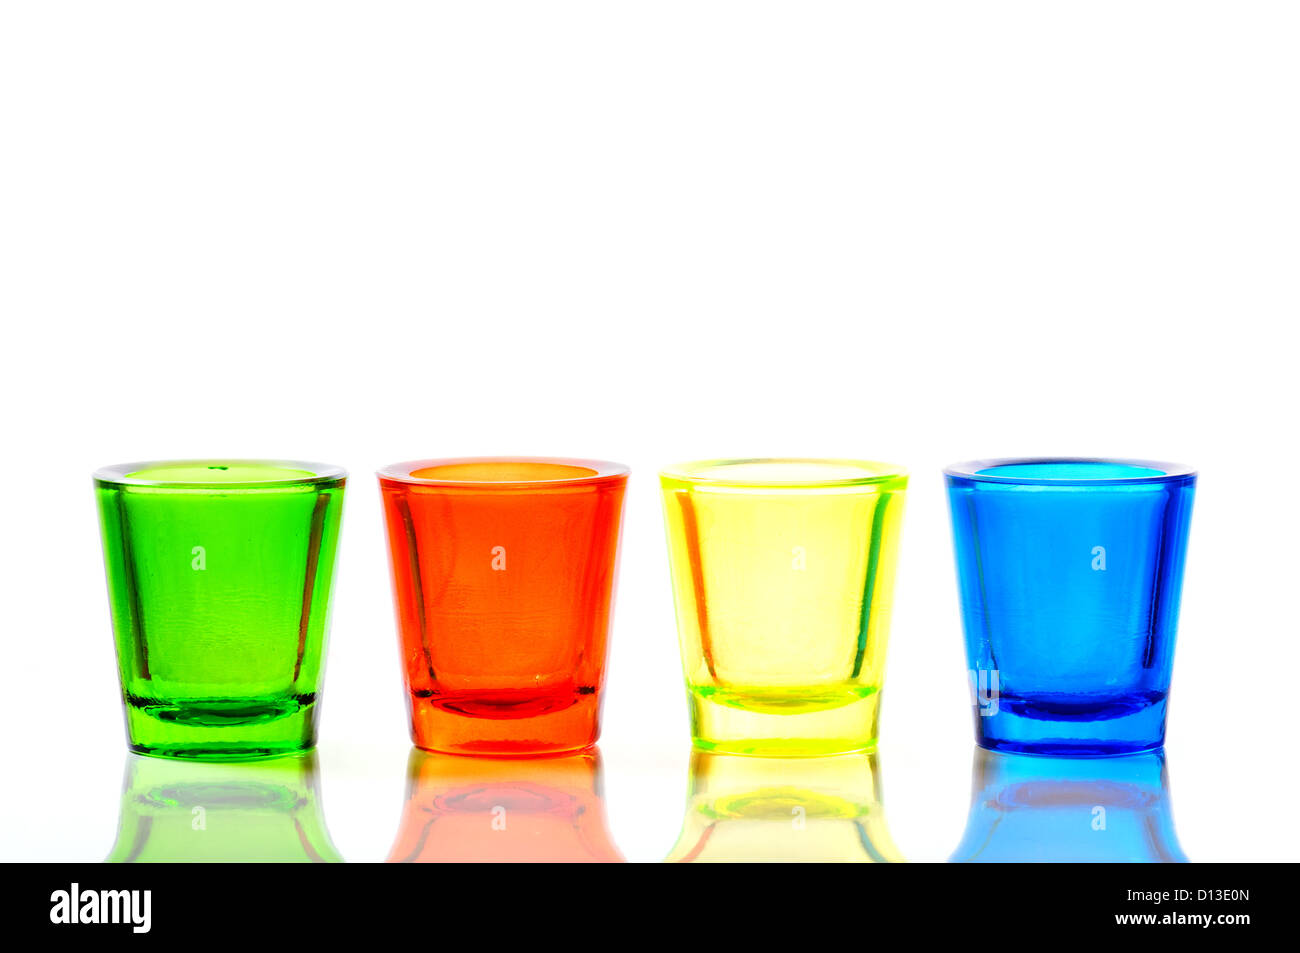 four color blue, yellow, red and green glass candlestick - Stock Image